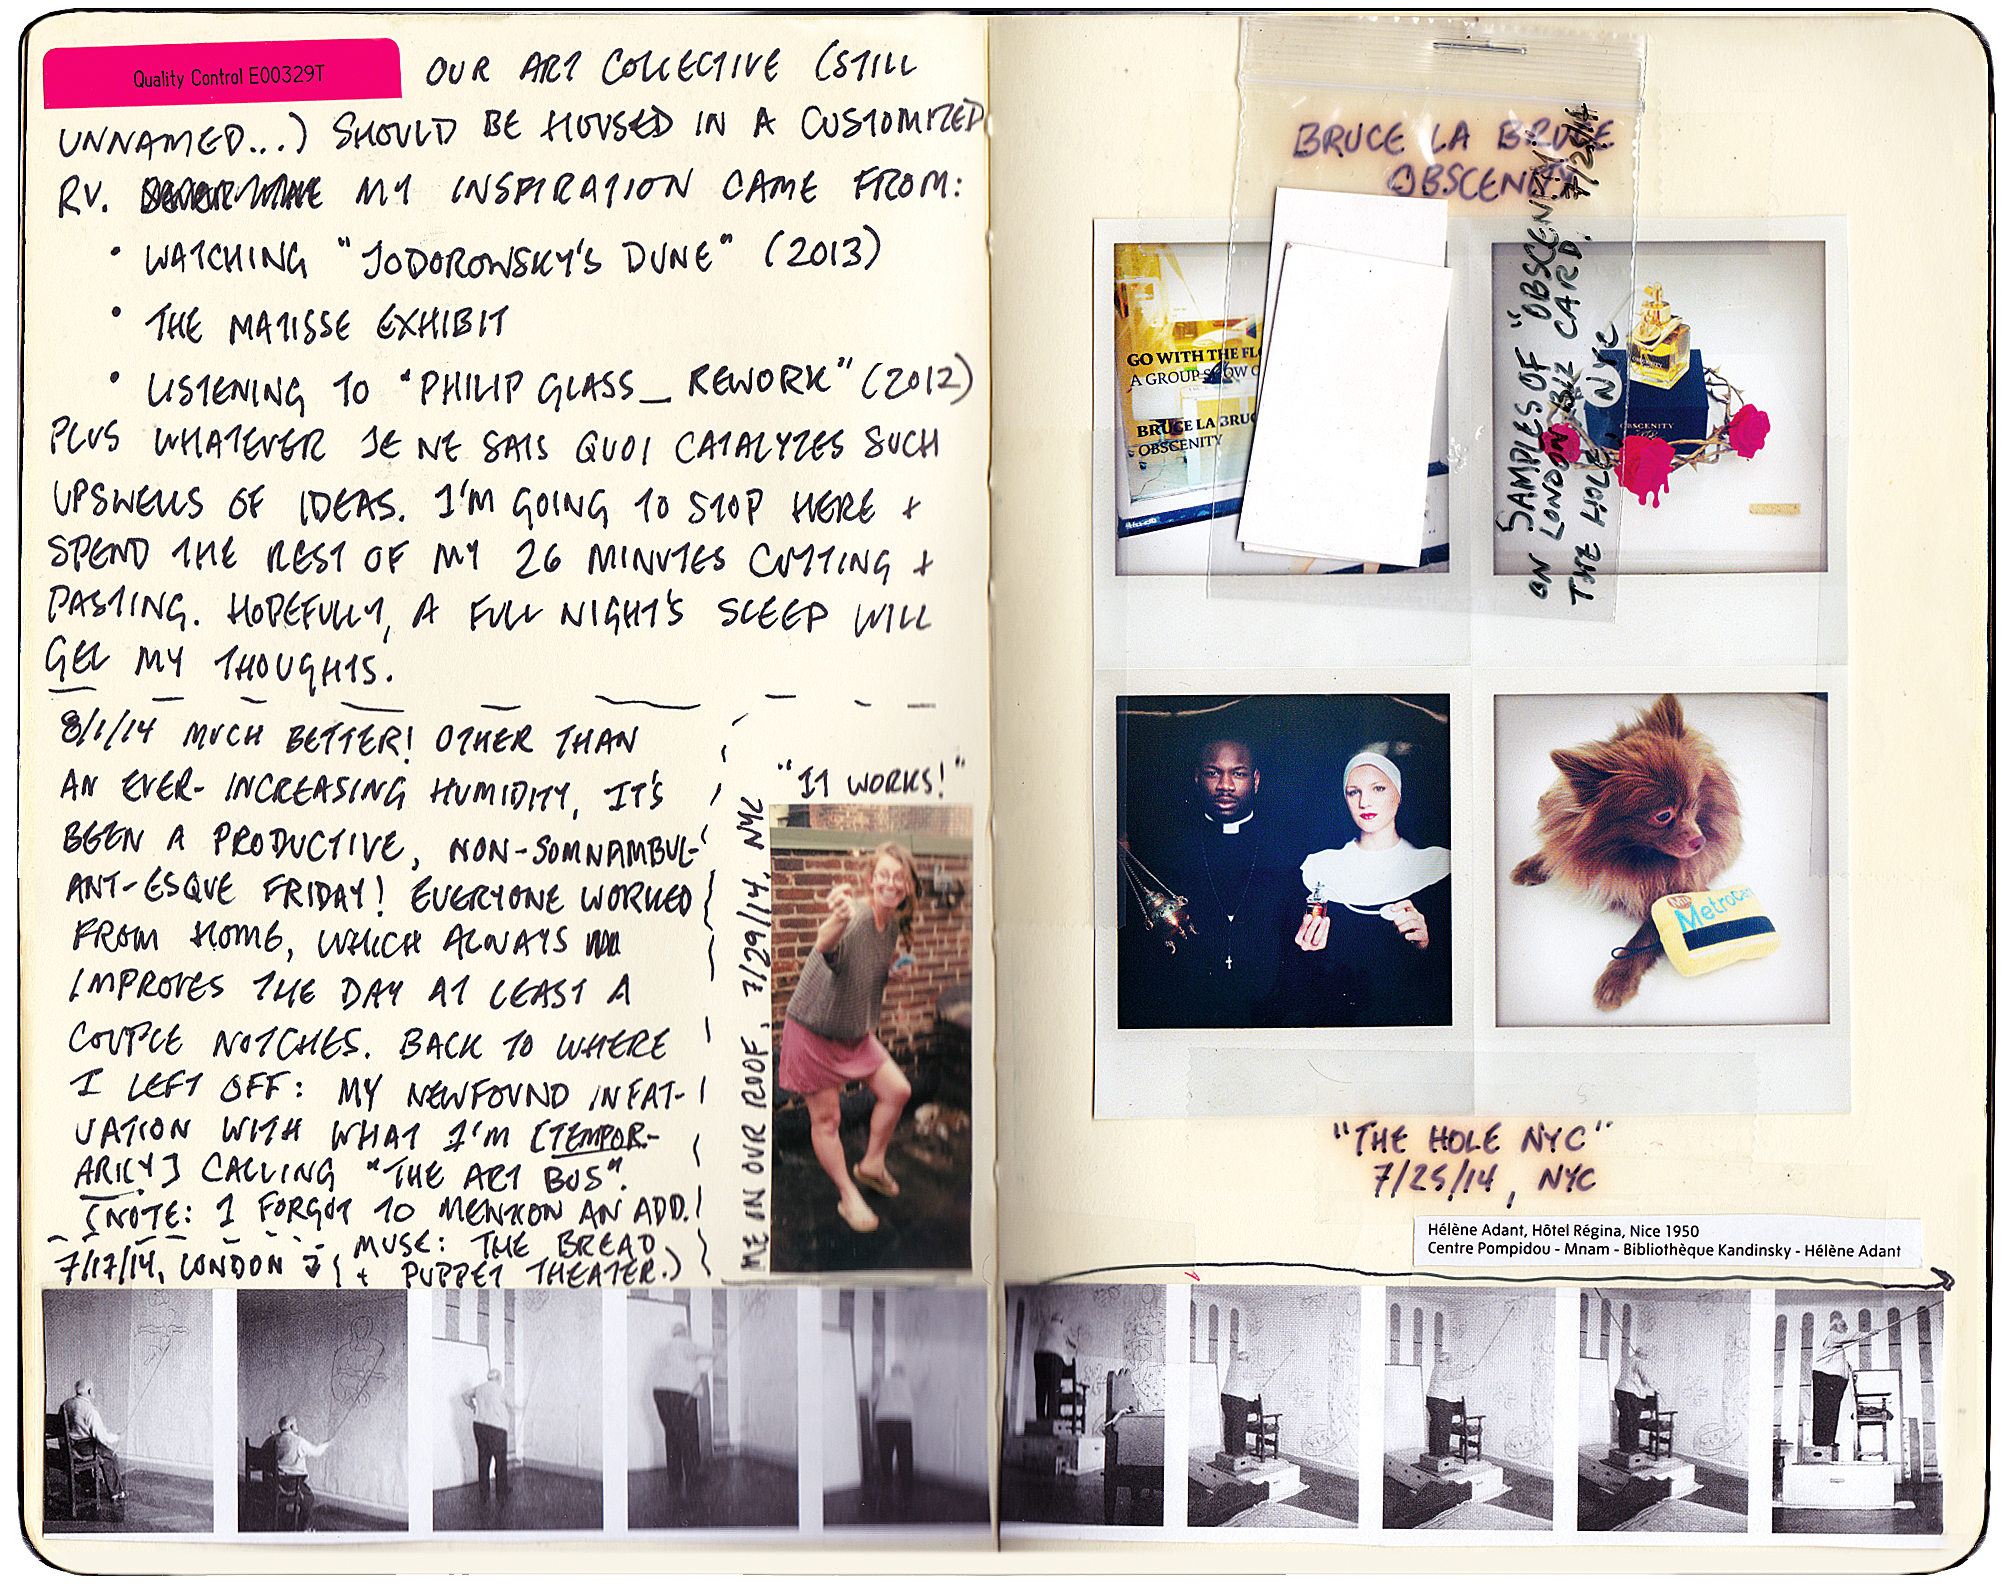 An idea is born: Seminal entries from Davis's journals reveal her thinking process as The Art Bus Project began to take shape in her mind.